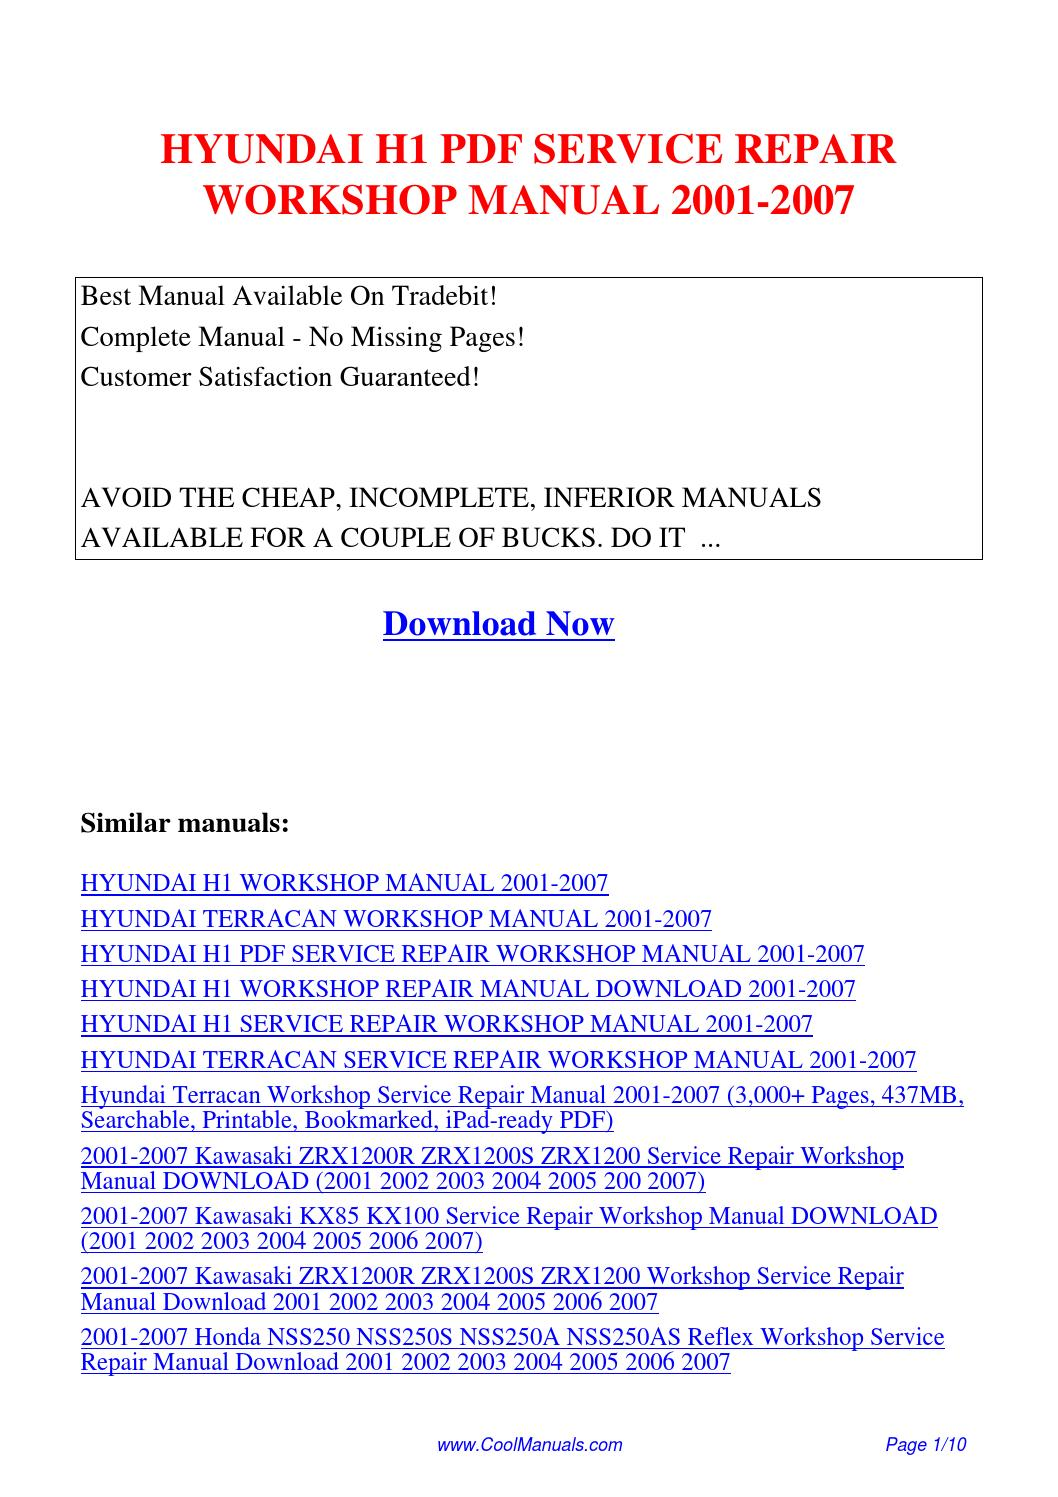 HYUNDAI H1 SERVICE REPAIR WORKSHOP MANUAL 2001-2007.pdf by Linda Pong -  issuu